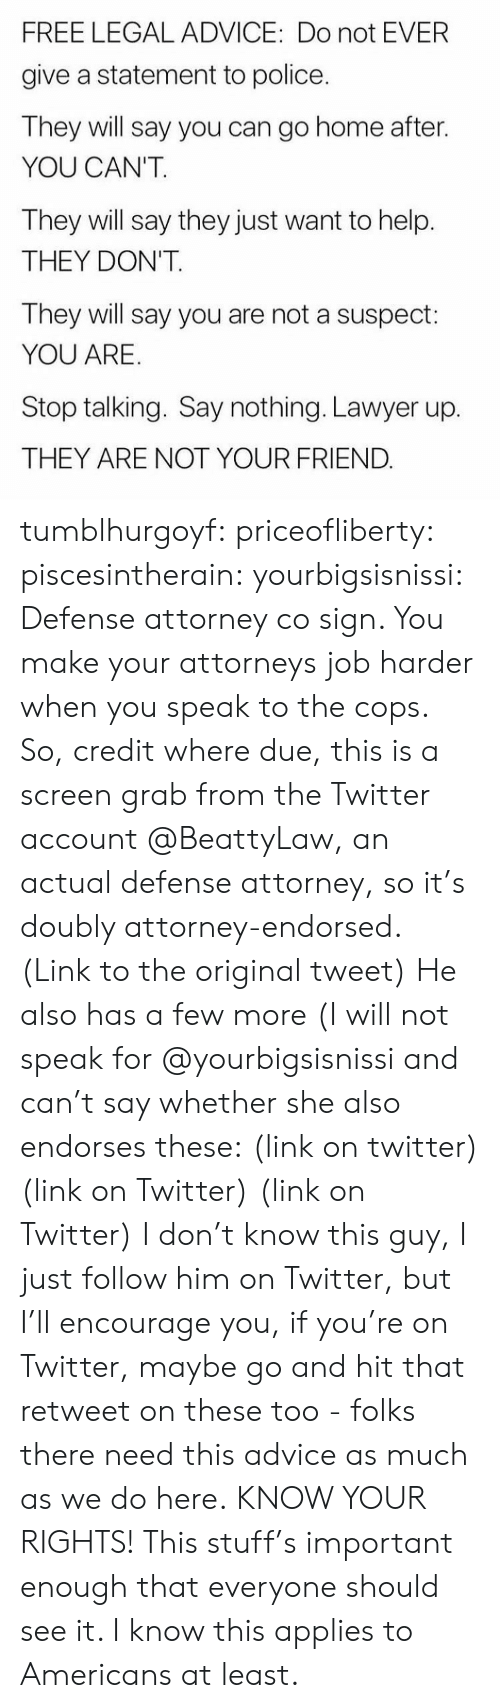 attorneys: FREE LEGAL ADVICE: Do not EVER  give a statement to police  They will say you can go home after.  YOU CAN'T  They will say they just want to help.  THEY DON'T.  They will say you are not a suspect:  YOU ARE  Stop talking. Say nothing. Lawyer up.  THEY ARE NOT YOUR FRIEND tumblhurgoyf: priceofliberty:  piscesintherain:  yourbigsisnissi:  Defense attorney co sign.  You make your attorneys job harder when you speak to the cops.   So, credit where due, this is a screen grab from the Twitter account @BeattyLaw, an actual defense attorney, so it's doubly attorney-endorsed. (Link to the original tweet) He also has a few more (I will not speak for @yourbigsisnissi and can't say whether she also endorses these: (link on twitter) (link on Twitter) (link on Twitter) I don't know this guy, I just follow him on Twitter, but I'll encourage you, if you're on Twitter, maybe go and hit that retweet on these too - folks there need this advice as much as we do here.  KNOW YOUR RIGHTS!  This stuff's important enough that everyone should see it. I know this applies to Americans at least.